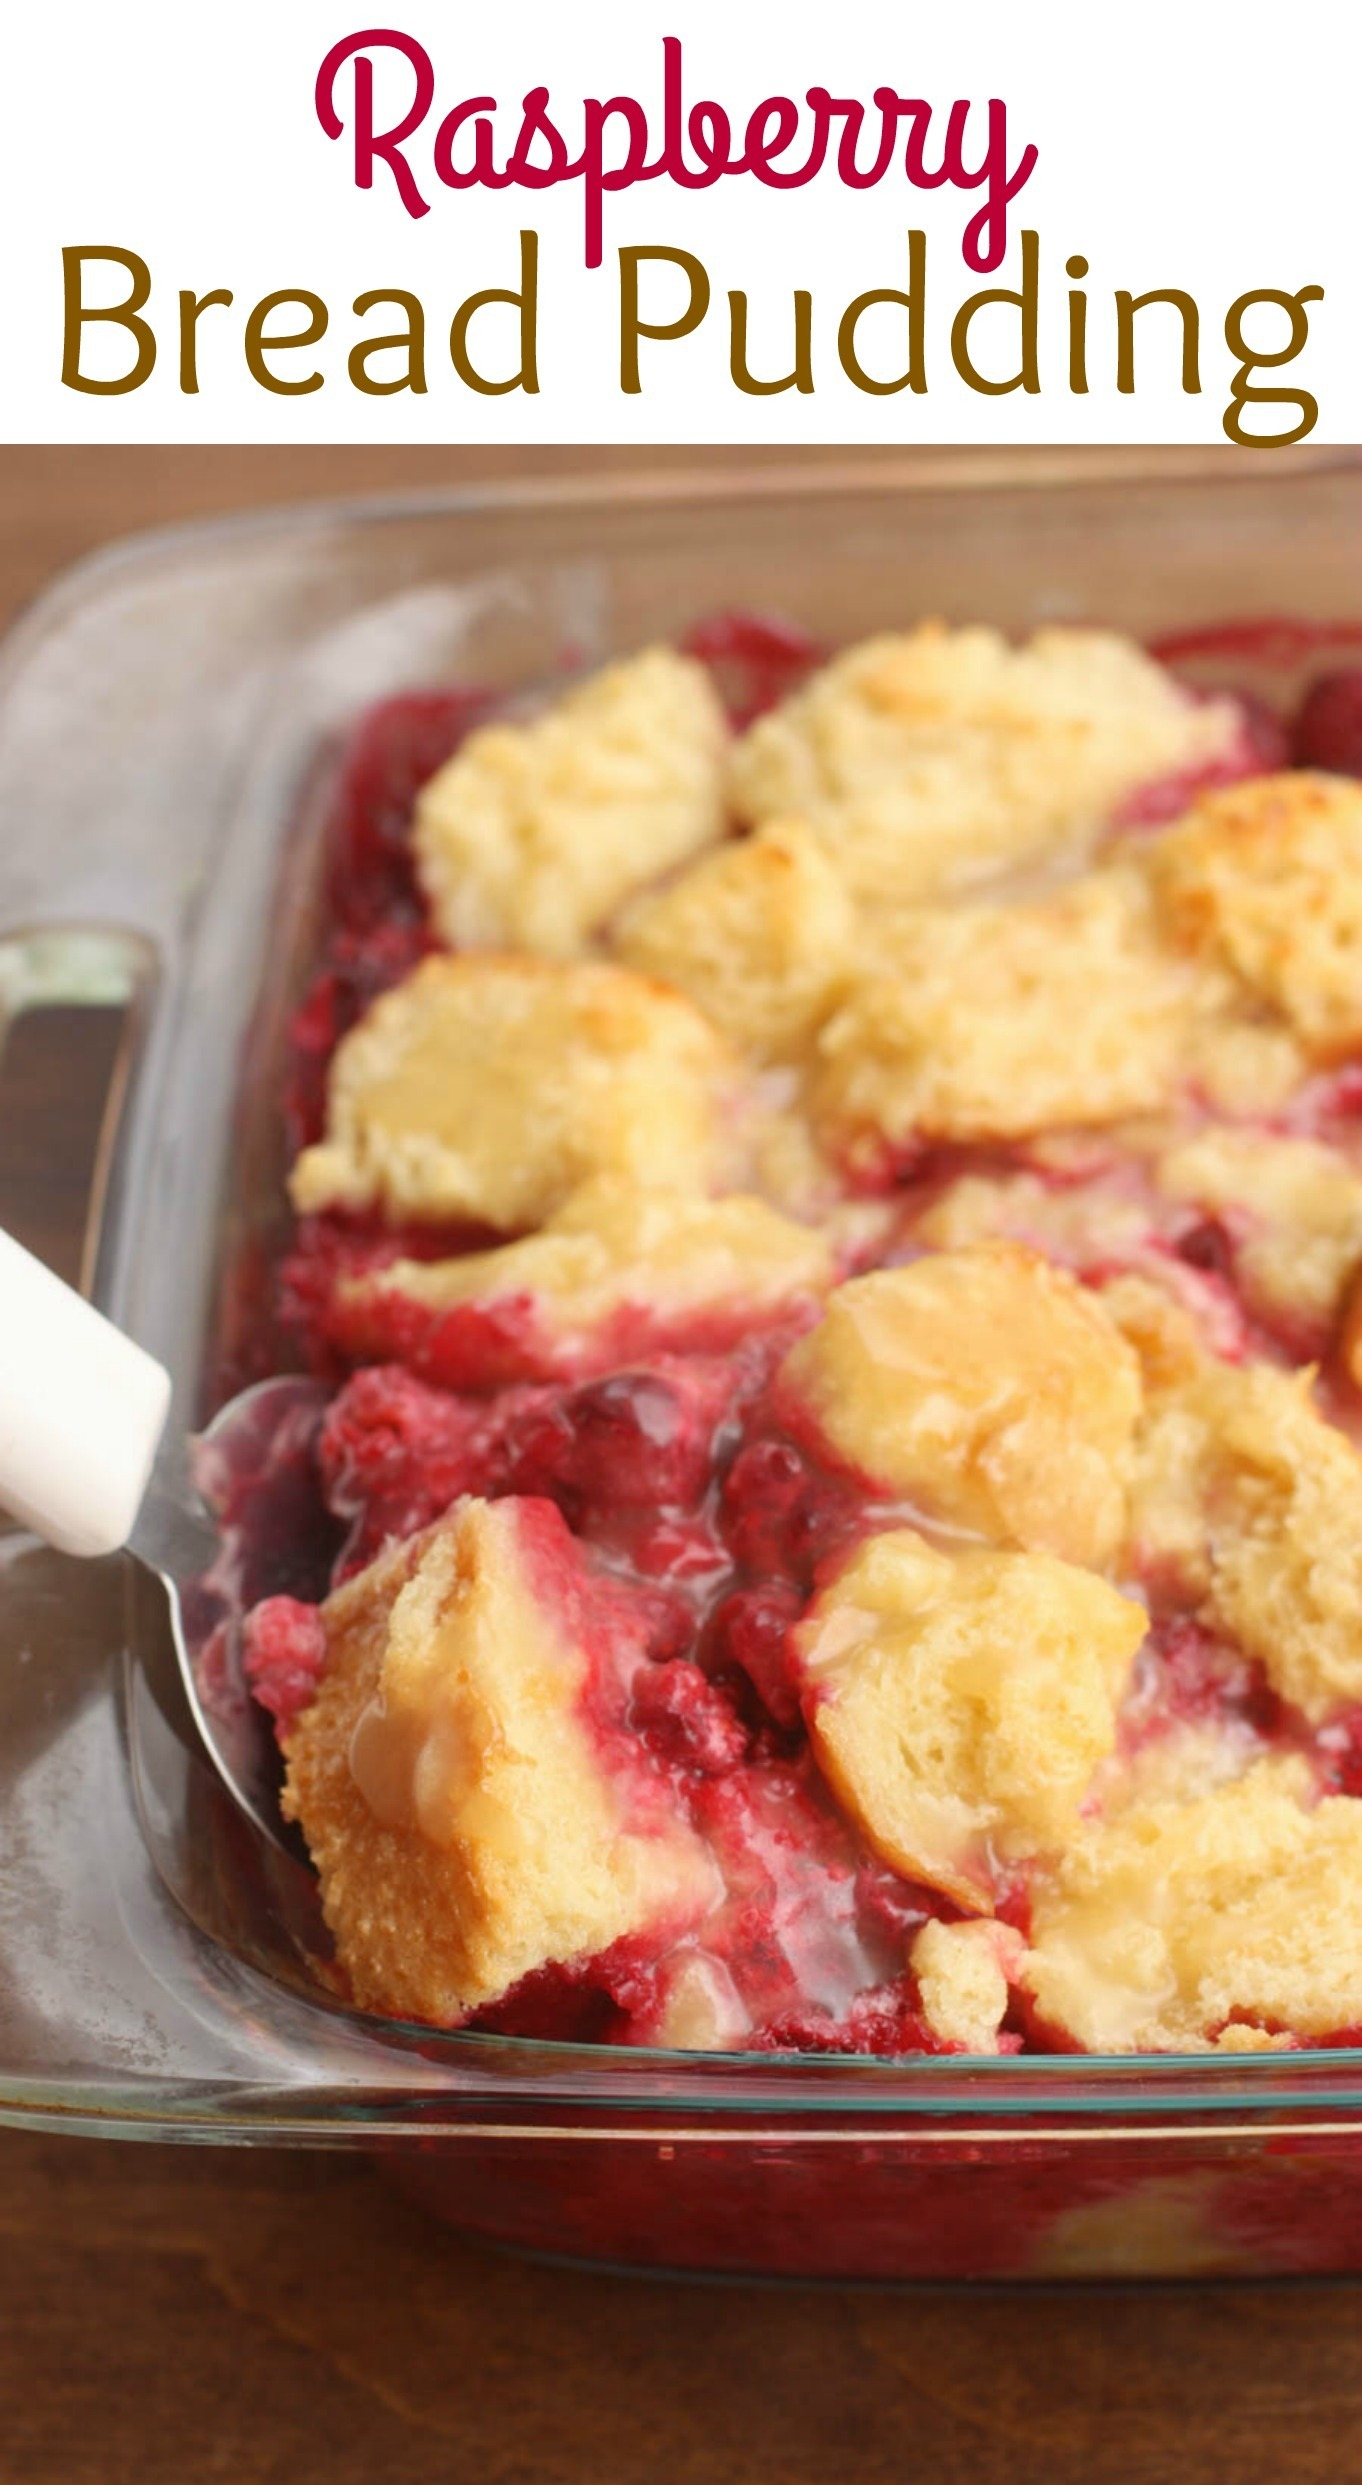 Raspberry Bread Pudding with Vanilla Cream Sauce